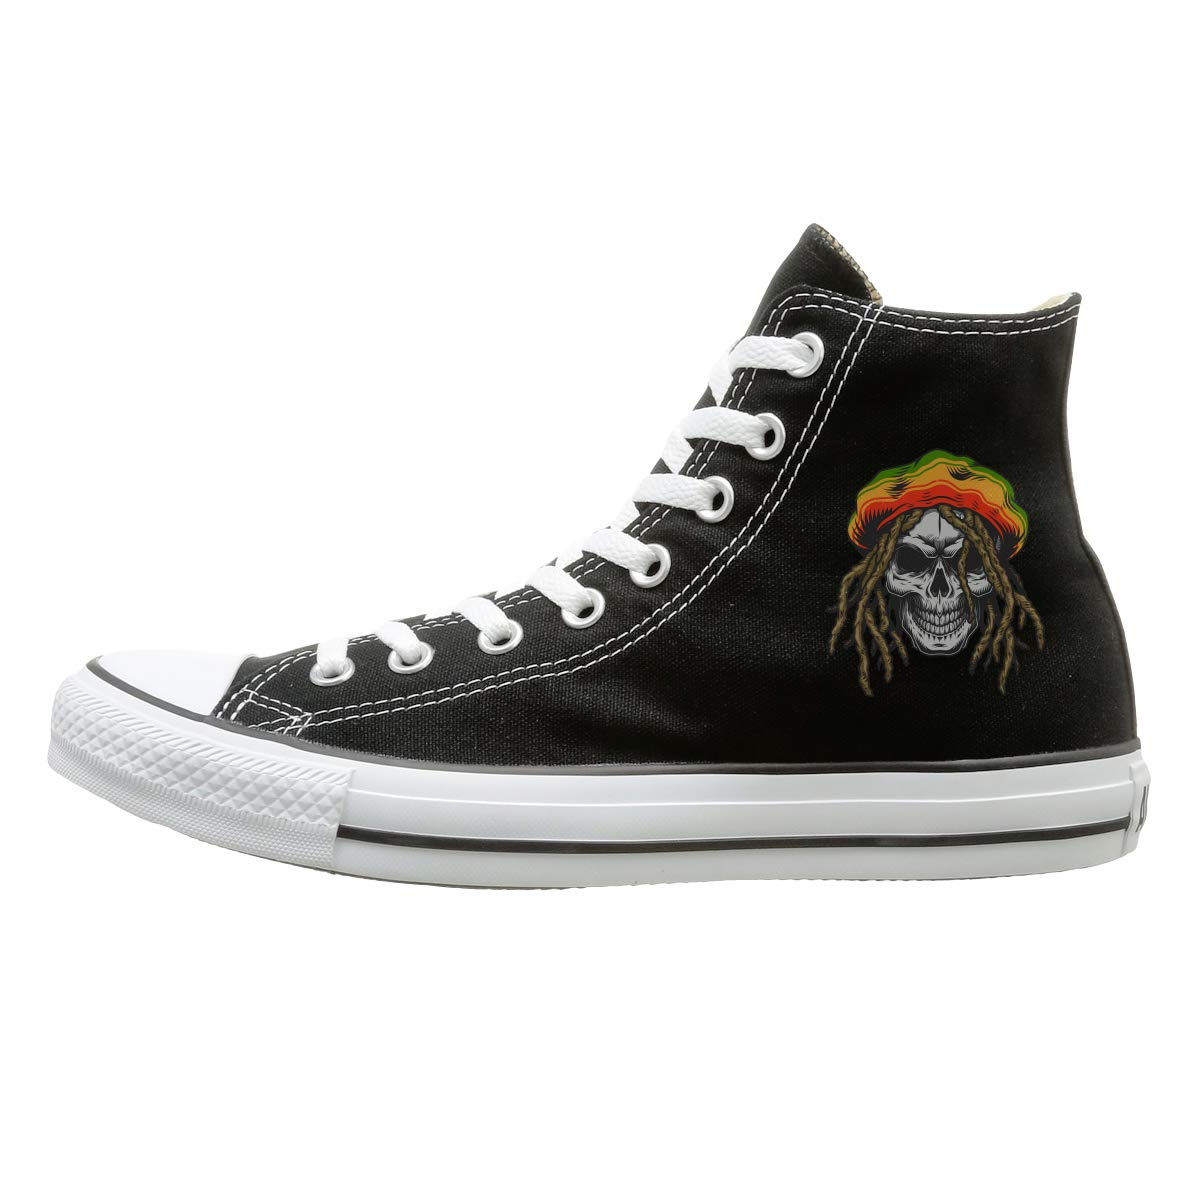 Men Women High Top Casual Sneakers Rastaman Skull With Rasta Hat Lace Up Running Shoes